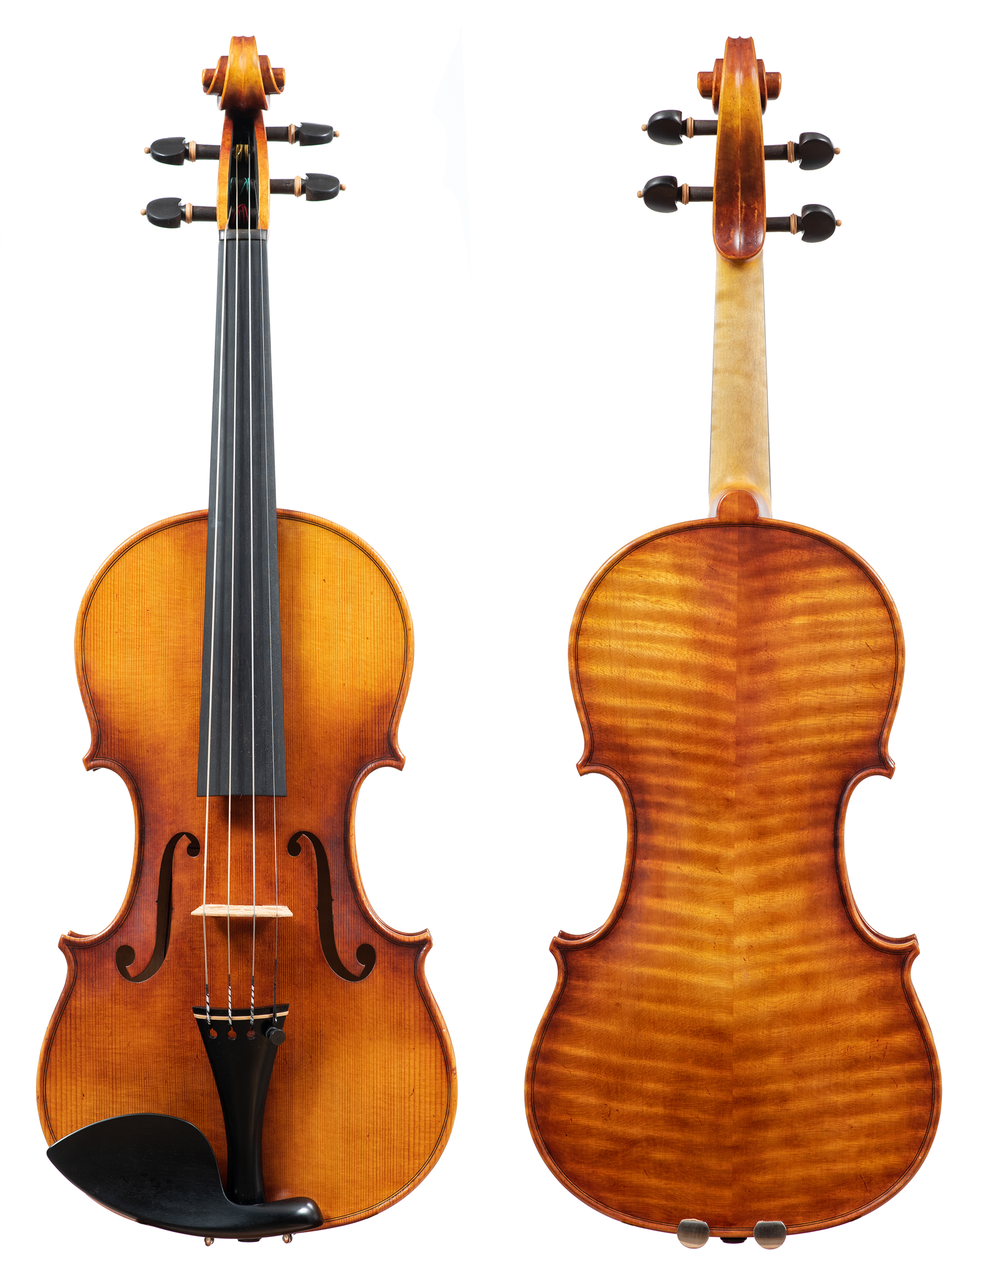 Copy of Copy of Bandila Virgil Violin